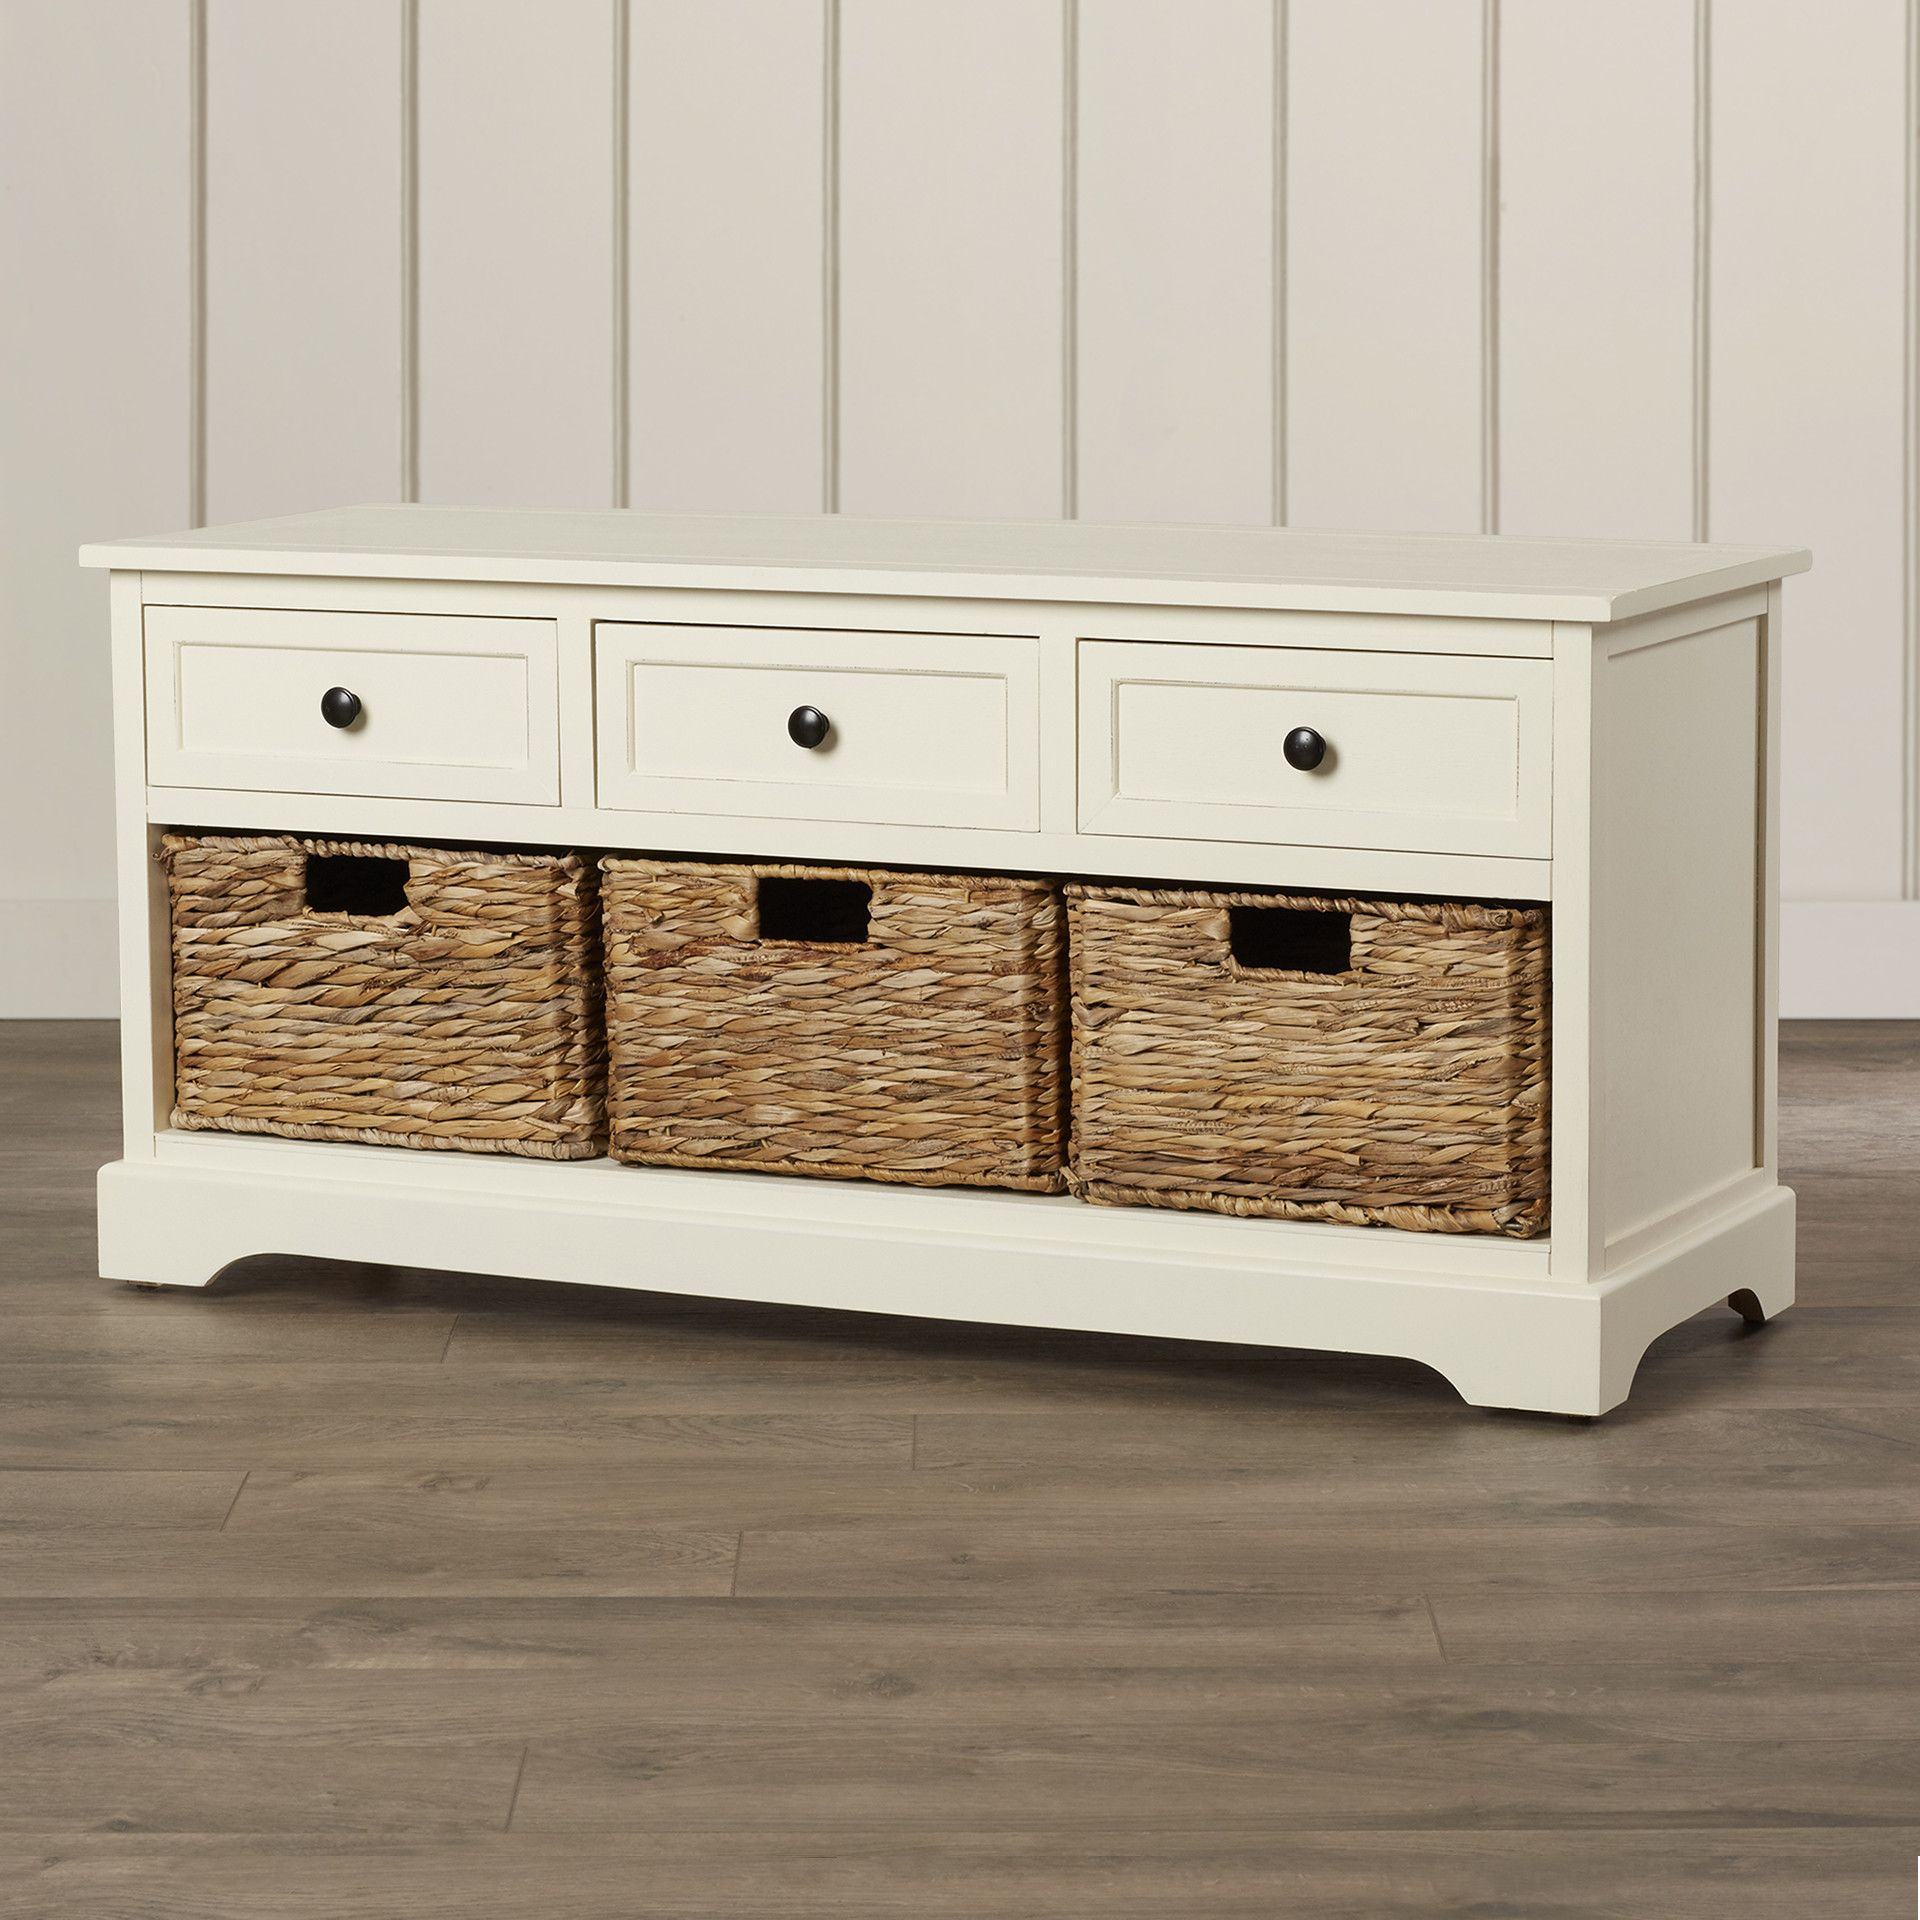 cabinet removable seat k bench drawer w haotian shop with rakuten cushion product haotiangroup storage white shoe drawers